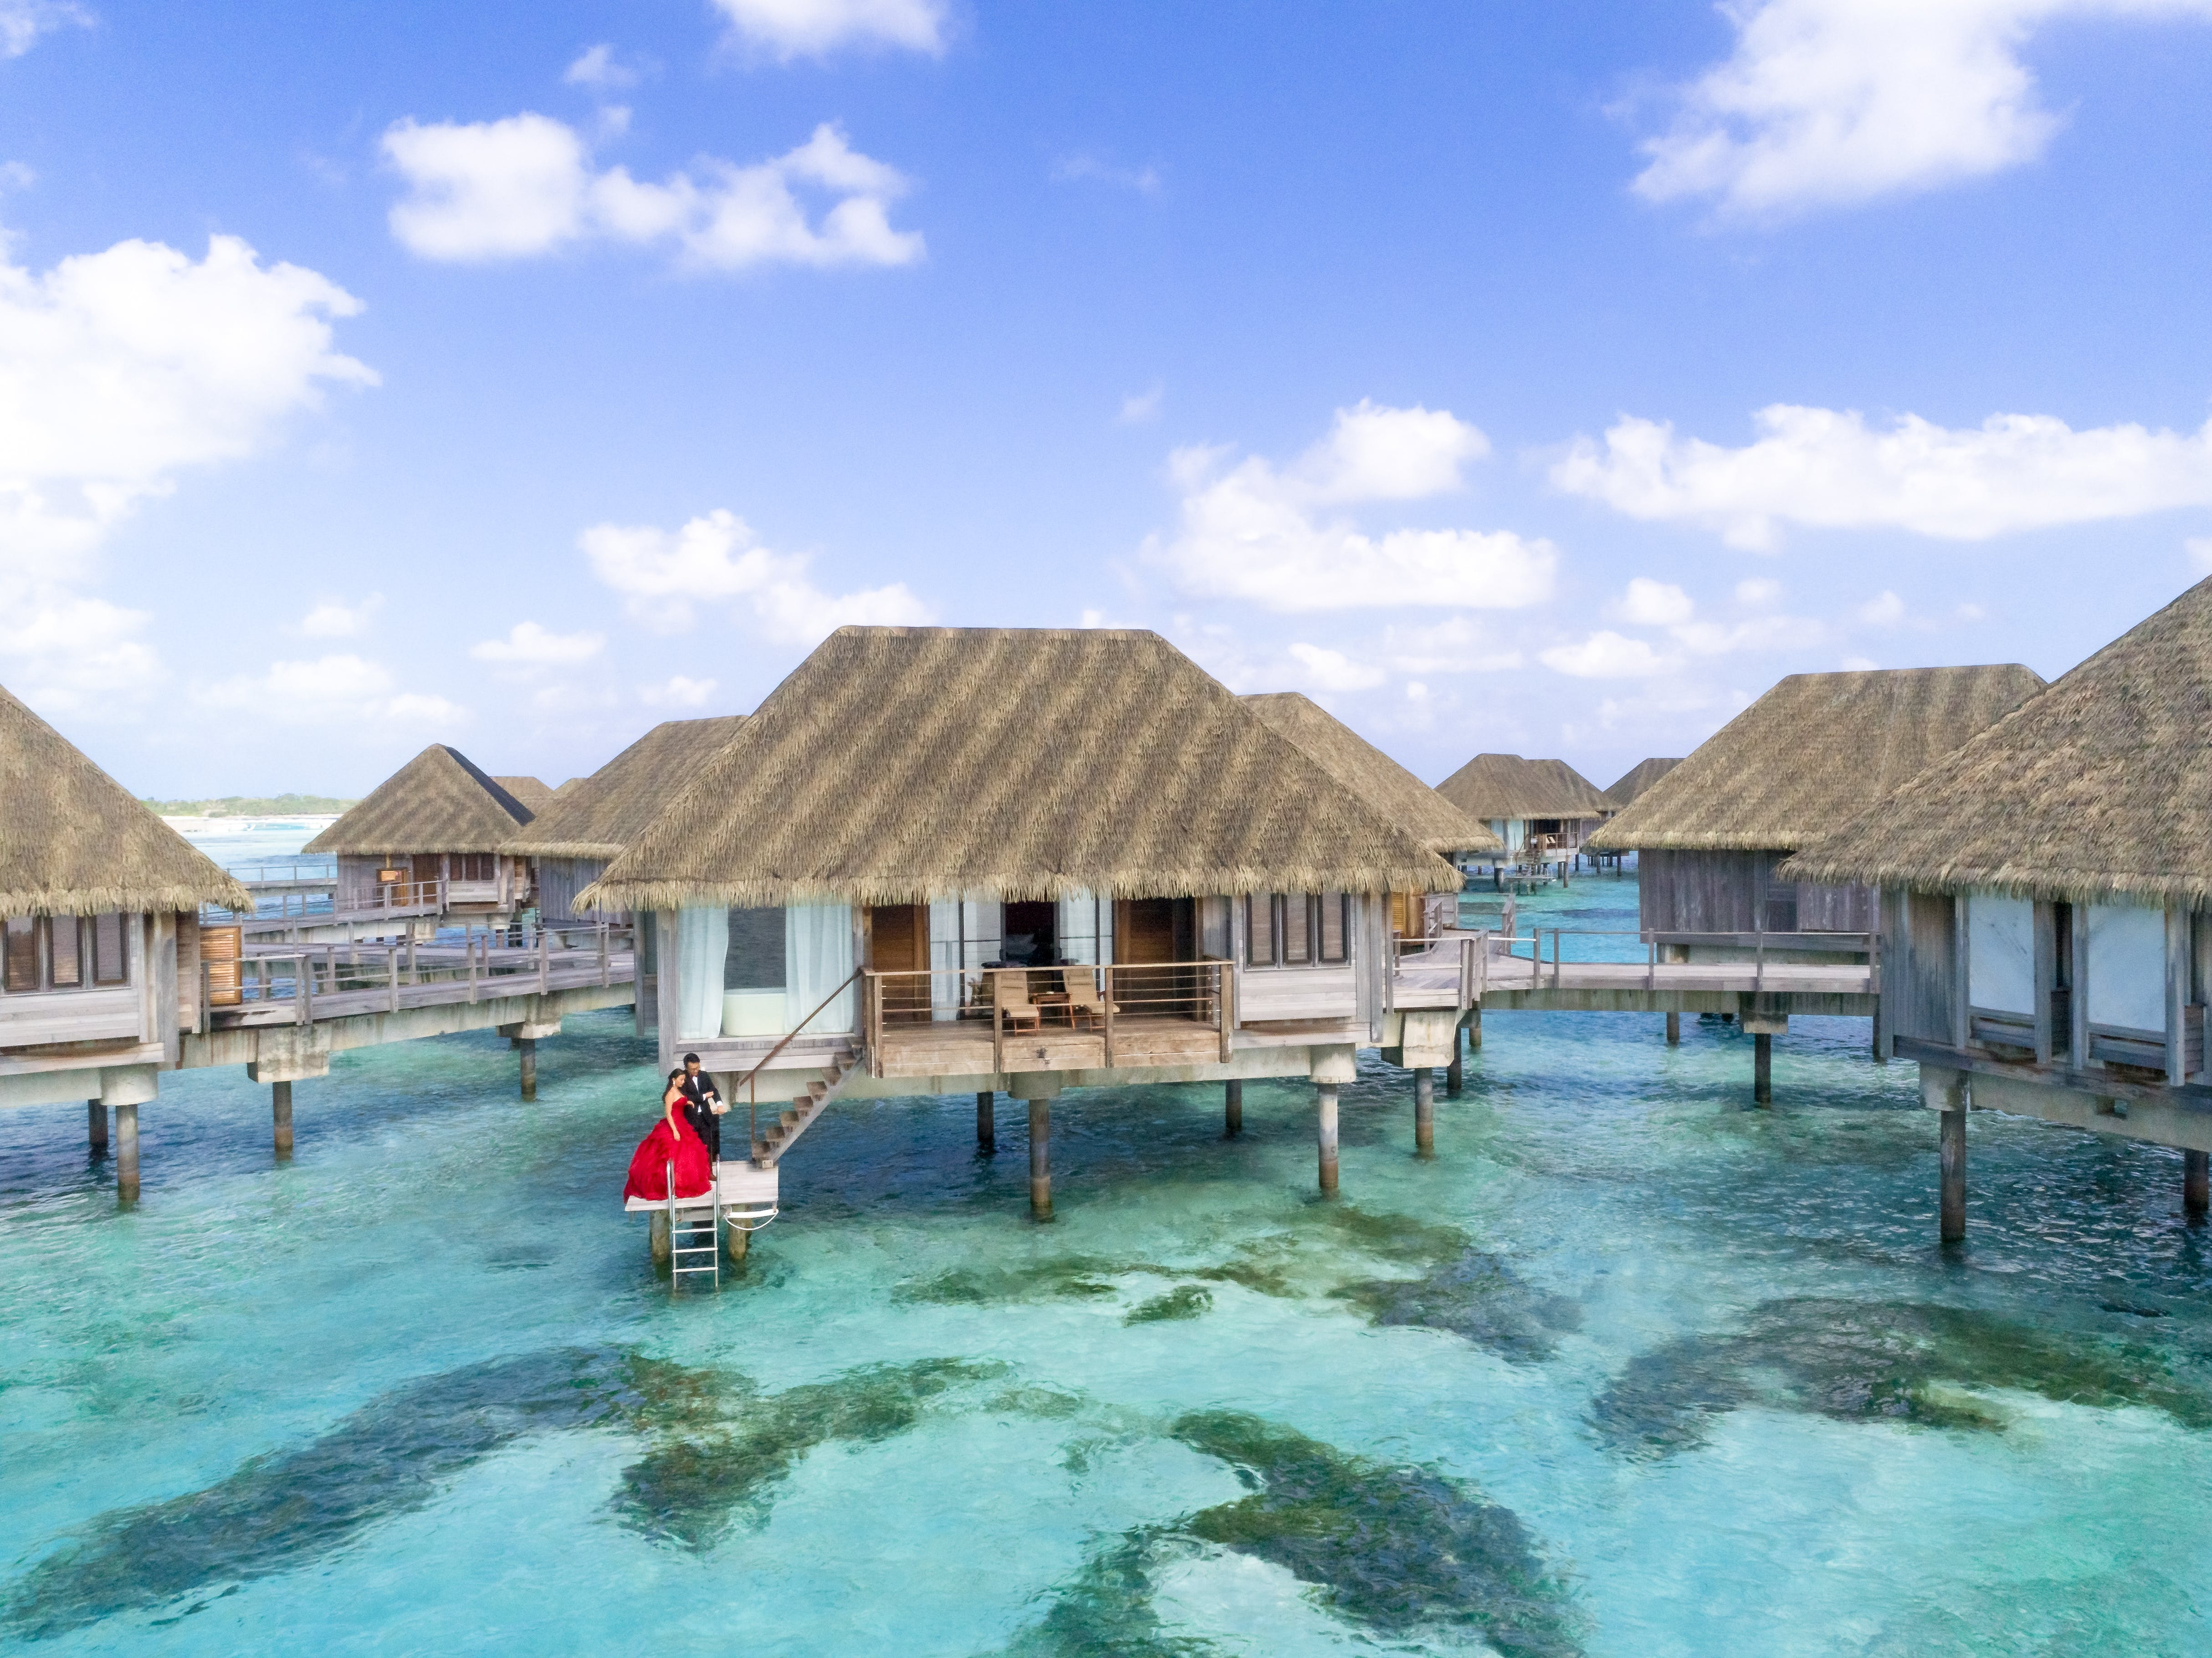 Cluster of Beige Huts Above Water